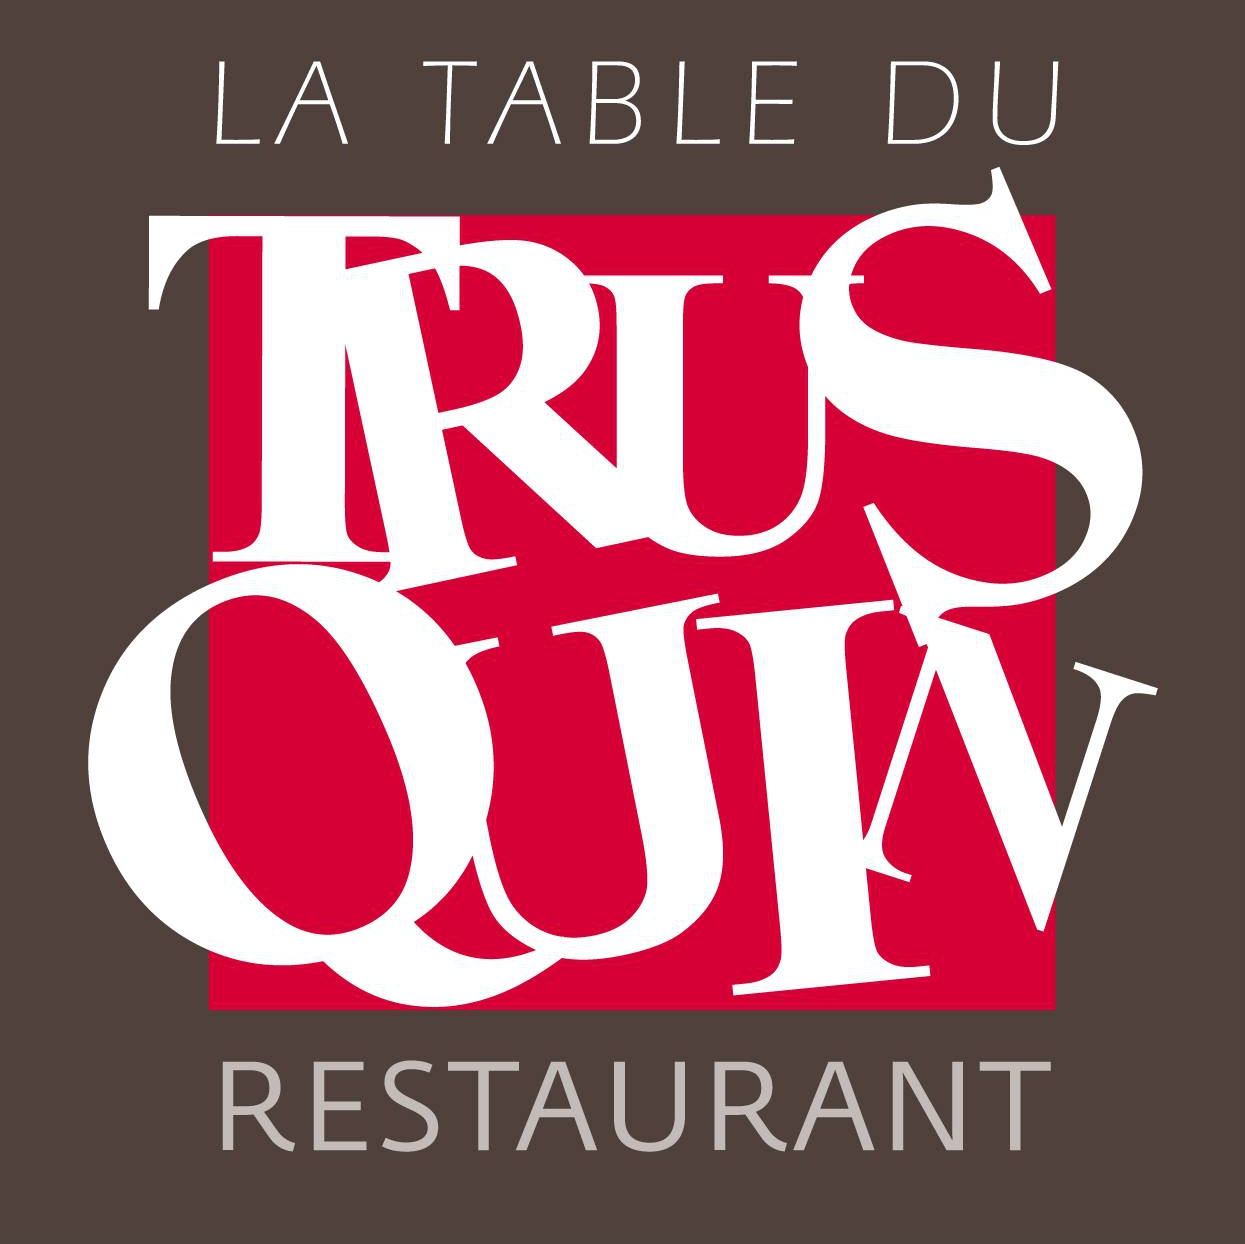 La Table Du Trusquin